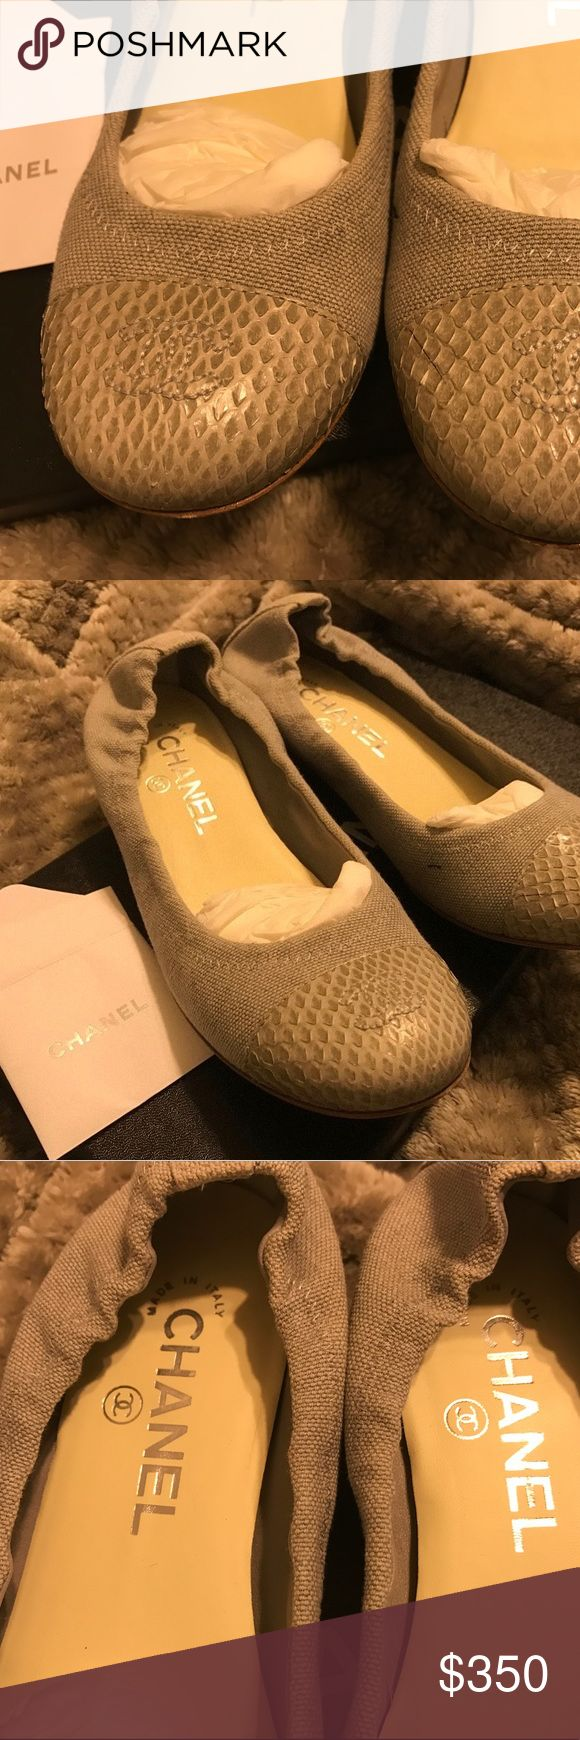 100% Authentic Chanel Ballerina Flats 100 % Authentic Chanel ballerina flats.. Rarely worn, (too small for me) Soles have very minor scuffs. Please note please ensure the sizing is appropriate for you prior to purchasing as european conversions are not always accurate. Missing shoebox , dust-bag included.... Final Sale CHANEL Shoes Flats & Loafers